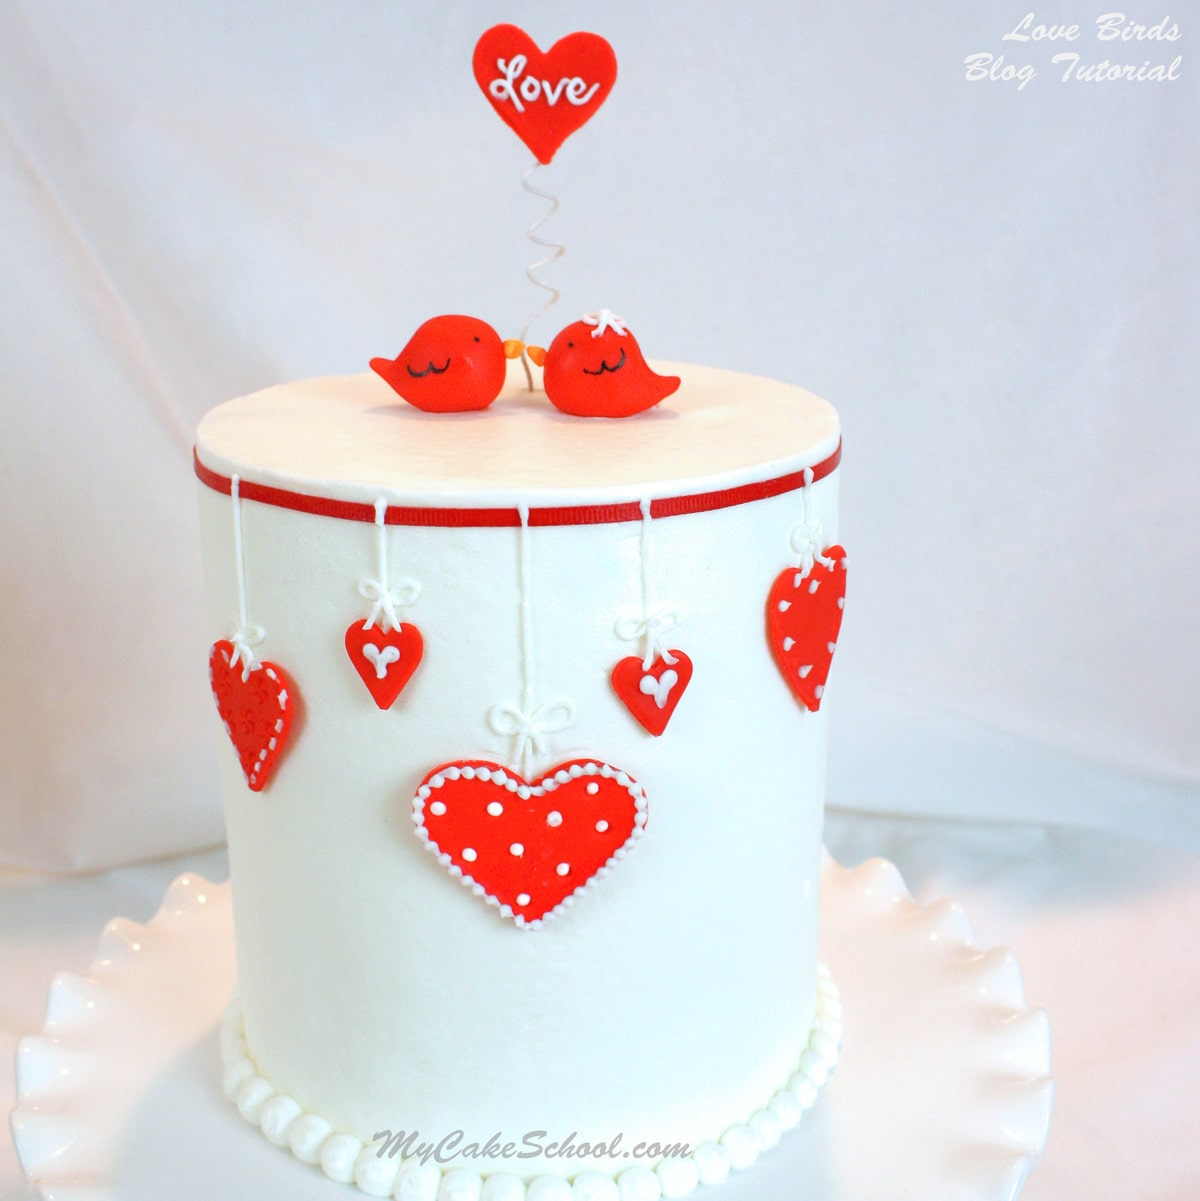 Free Wallpapers Of Cute Teddy Bears Cute Valentine S Day Cake Tutorial With Love Birds My